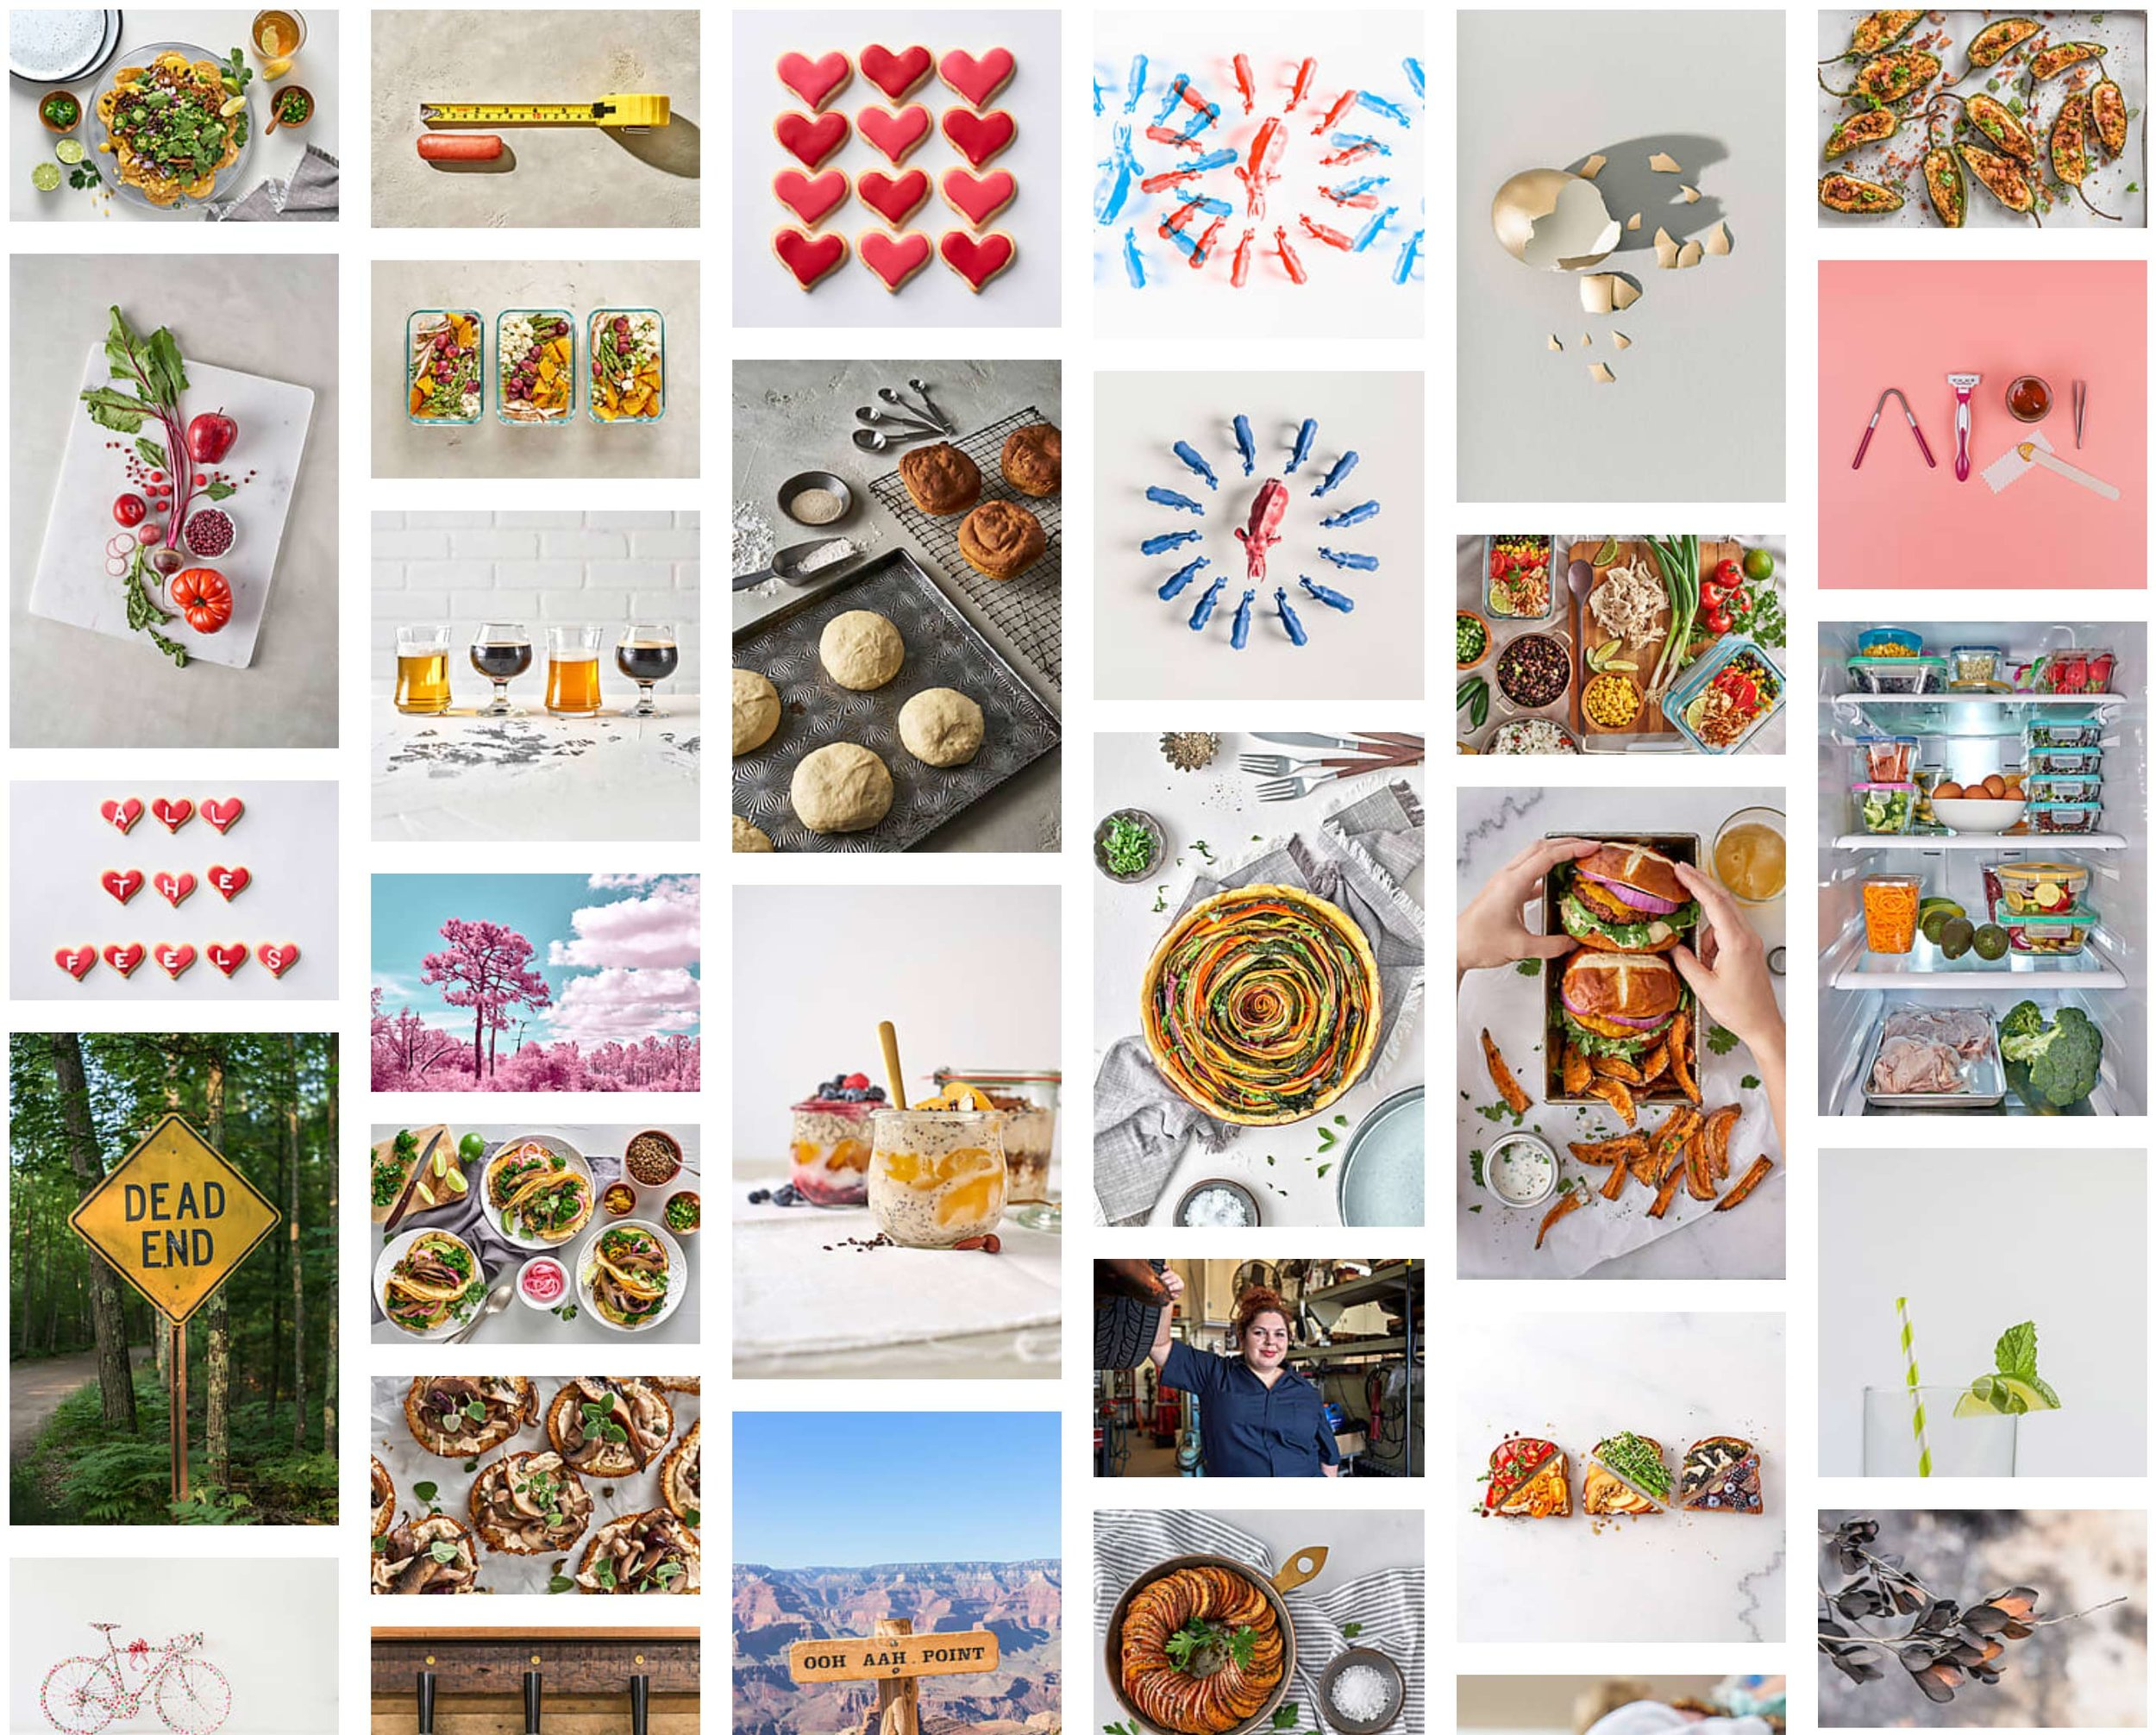 ROYALTY-FREE IMAGES - Royalty-free stock images • Take 20% off your first order with code SUZANNECLEMENTS20